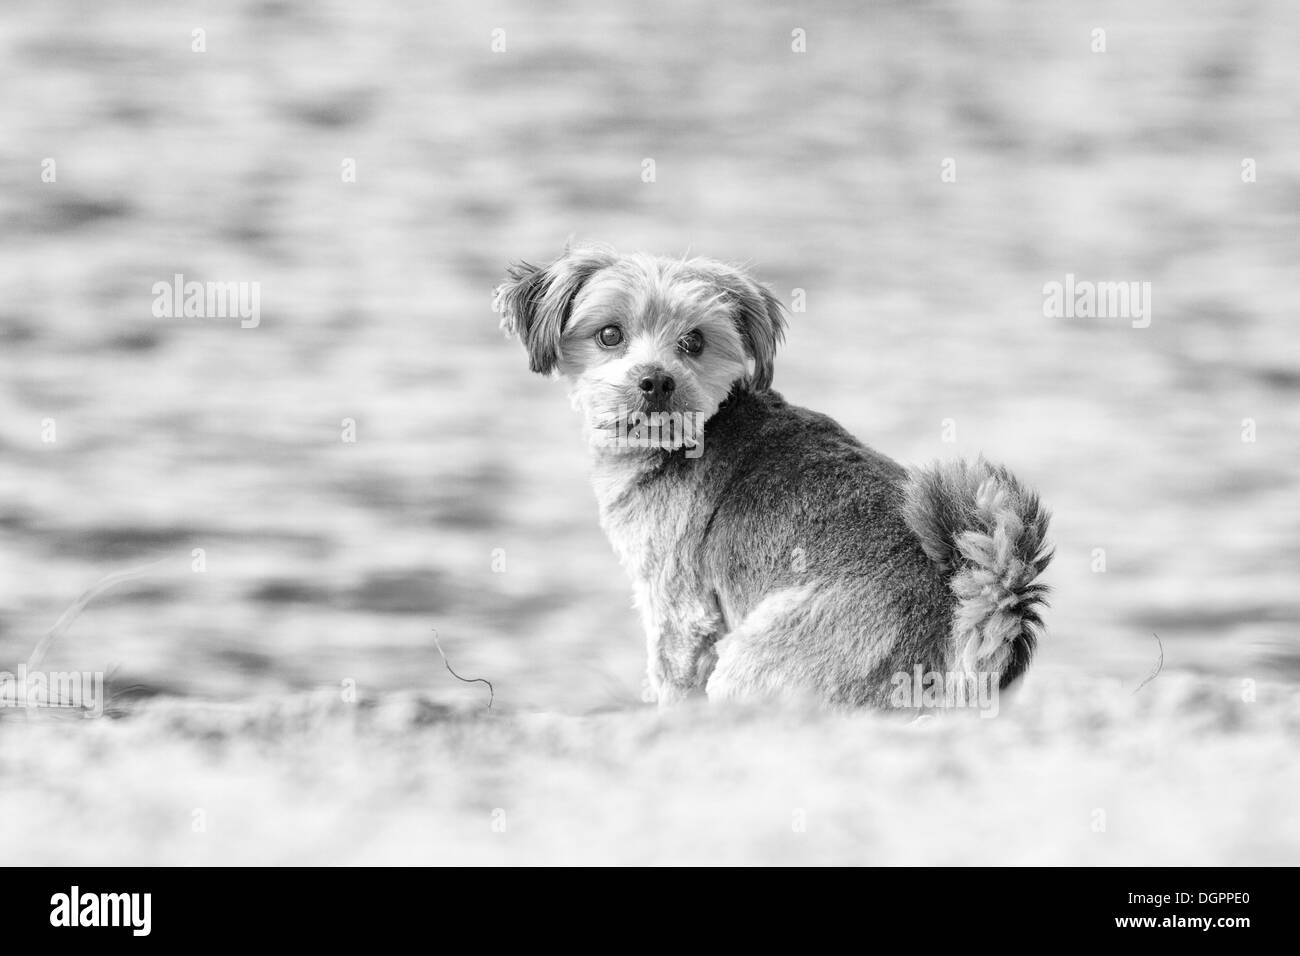 Norfolk Terrier, sitting by the water, Berlin Stock Photo